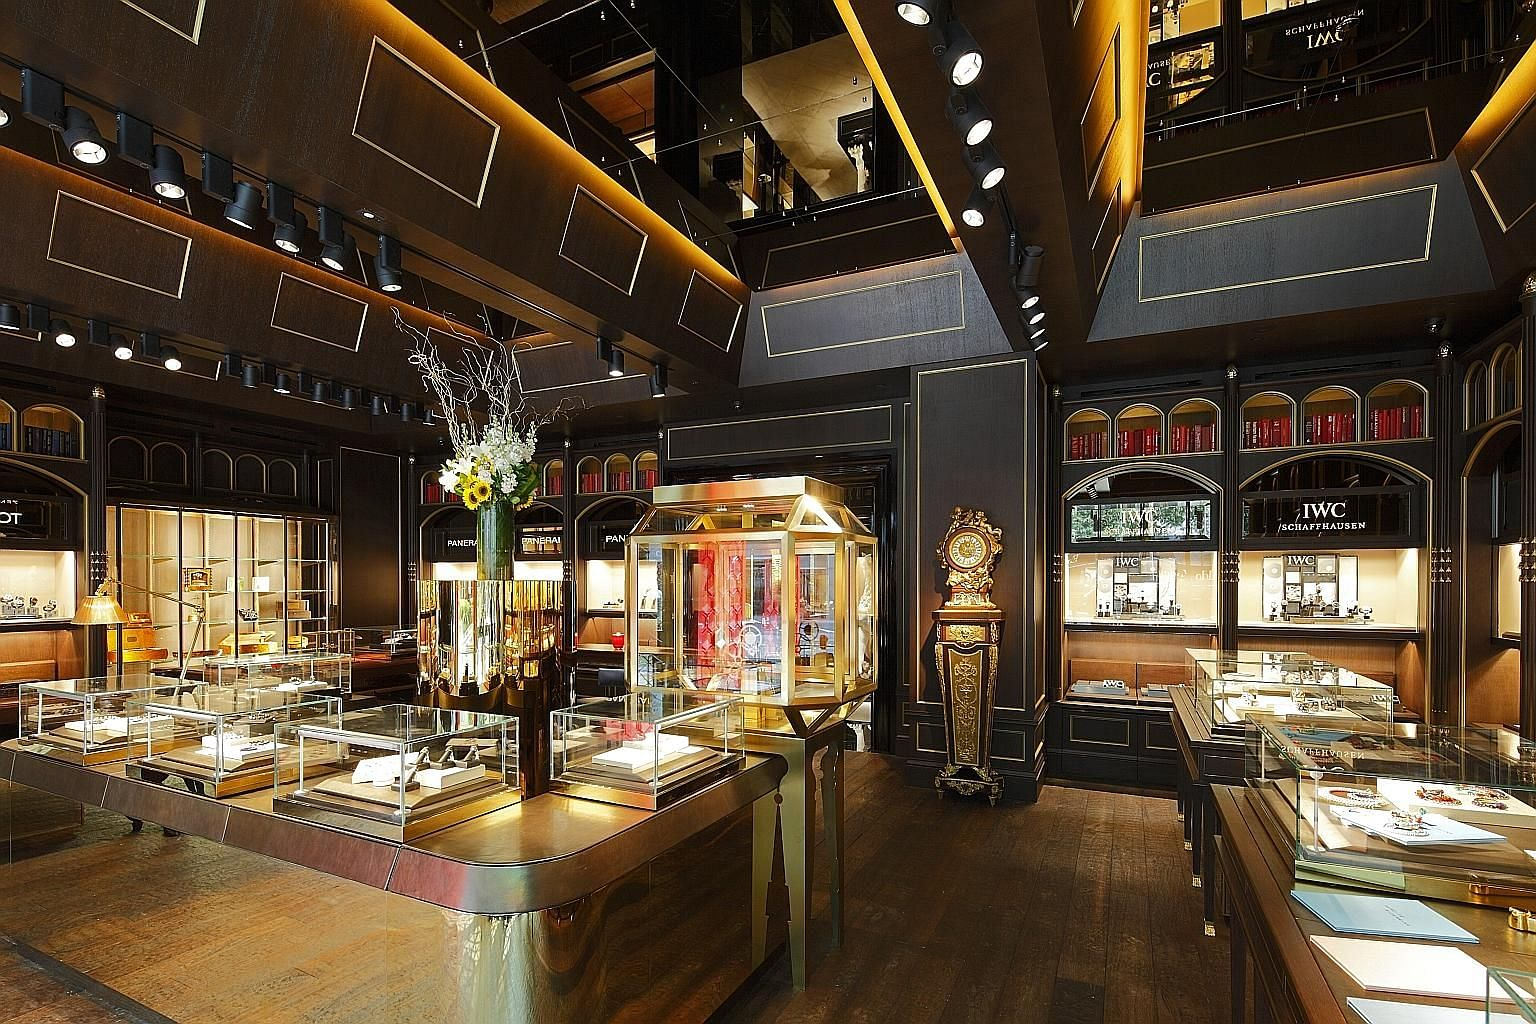 Malmaison by The Hour Glass in Orchard Road. Companies in the consumer discretionary sector such as The Hour Glass are worth looking at, given positive tailwinds for them, says KGI Securities analyst Joel Ng.